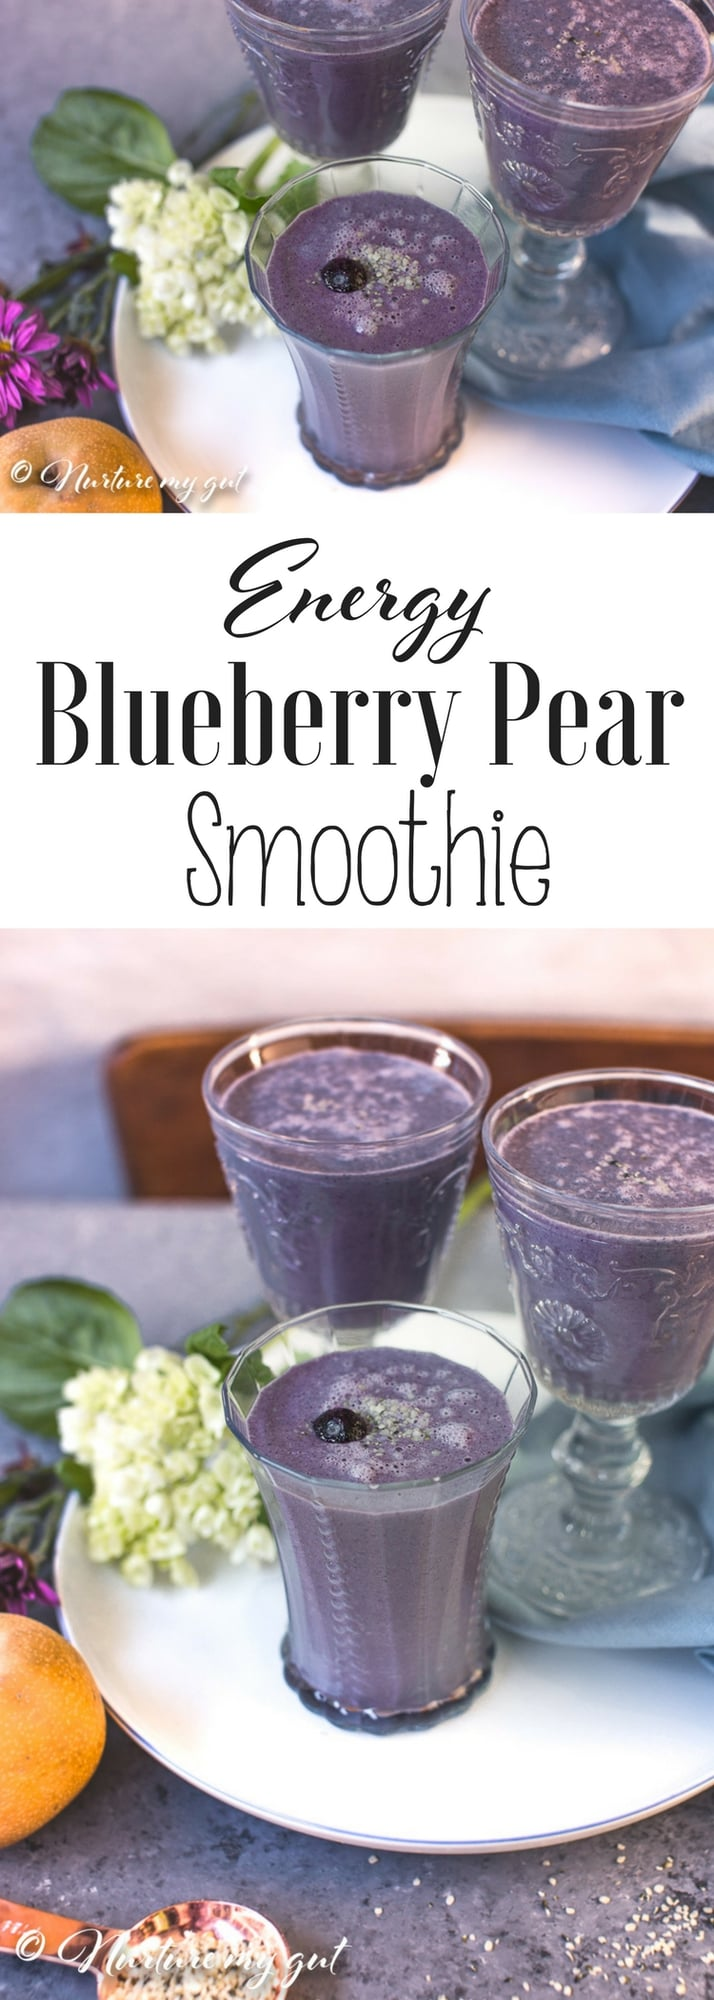 Energy Blueberry Pear Smoothie